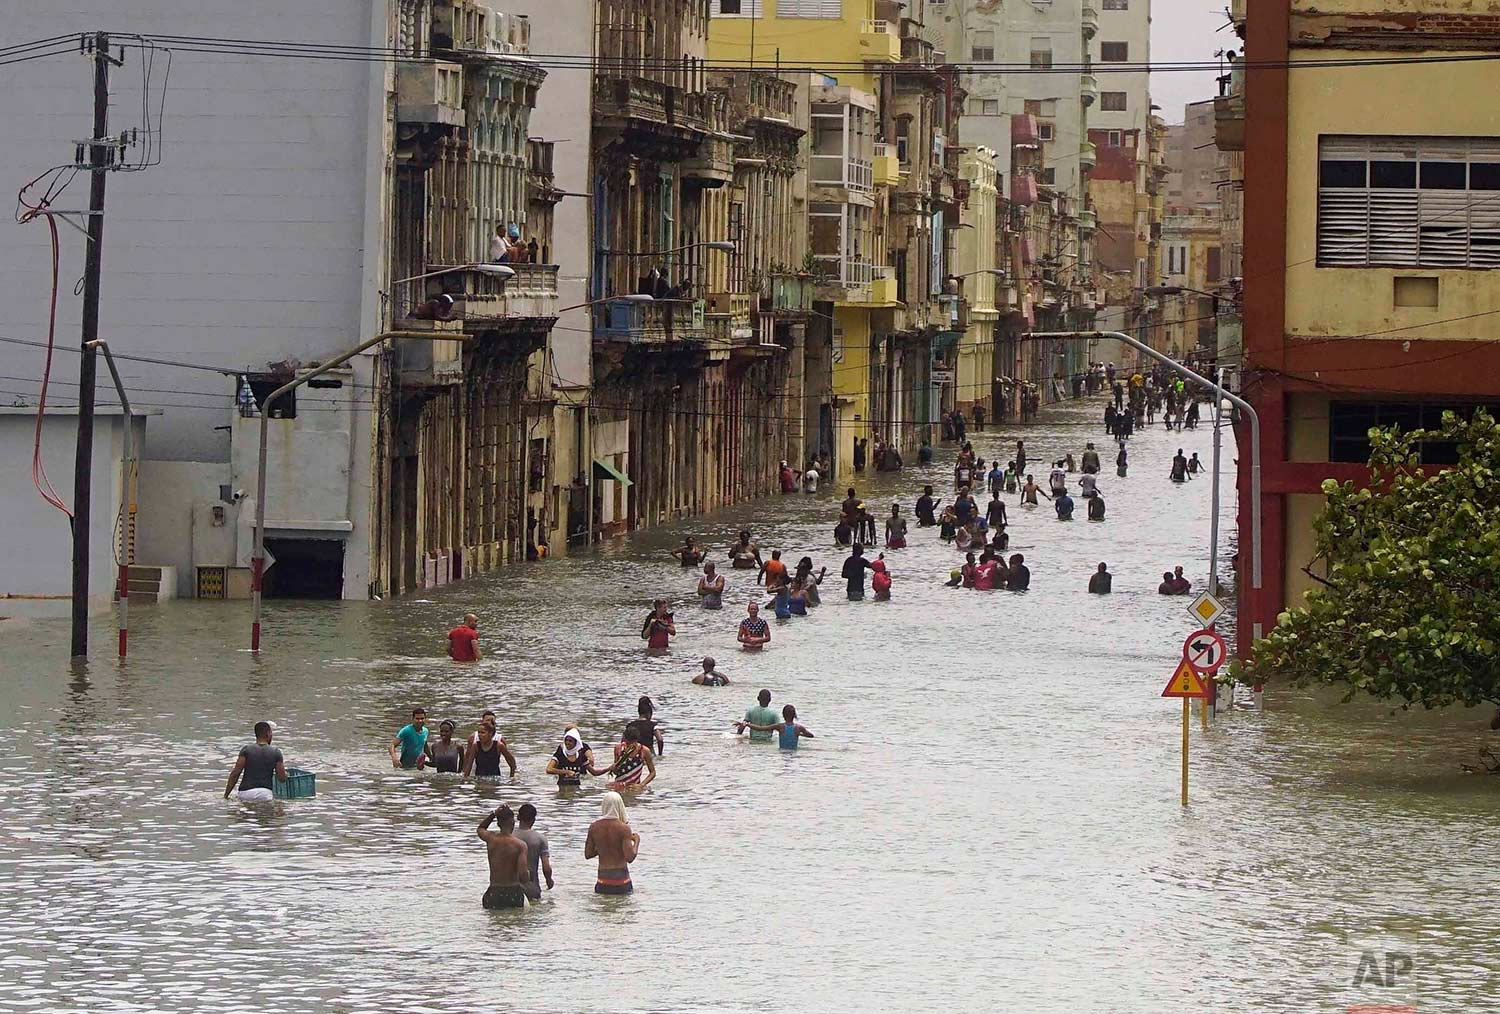 People move through flooded streets in Havana after the passage of Hurricane Irma, in Cuba, Sunday, Sept. 10, 2017. (AP Photo/Ramon Espinosa)